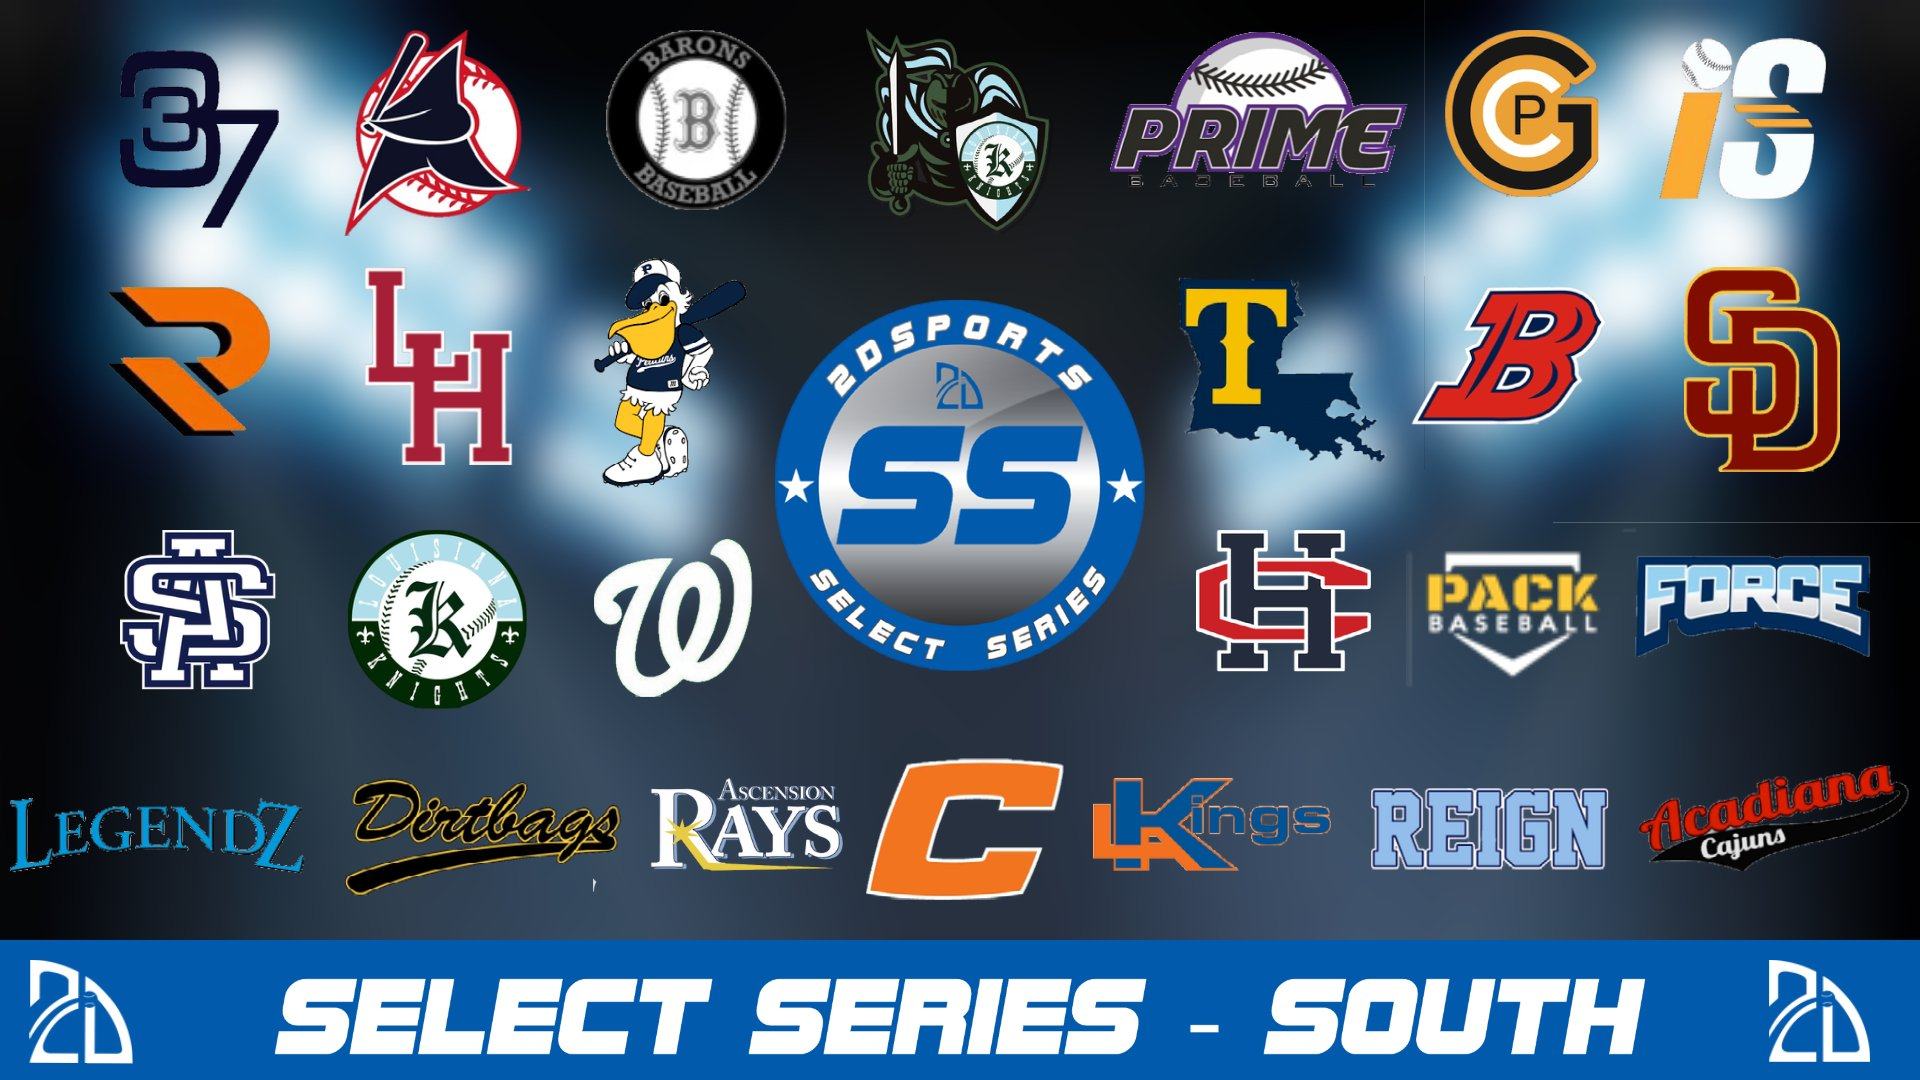 travel baseball teams in louisiana